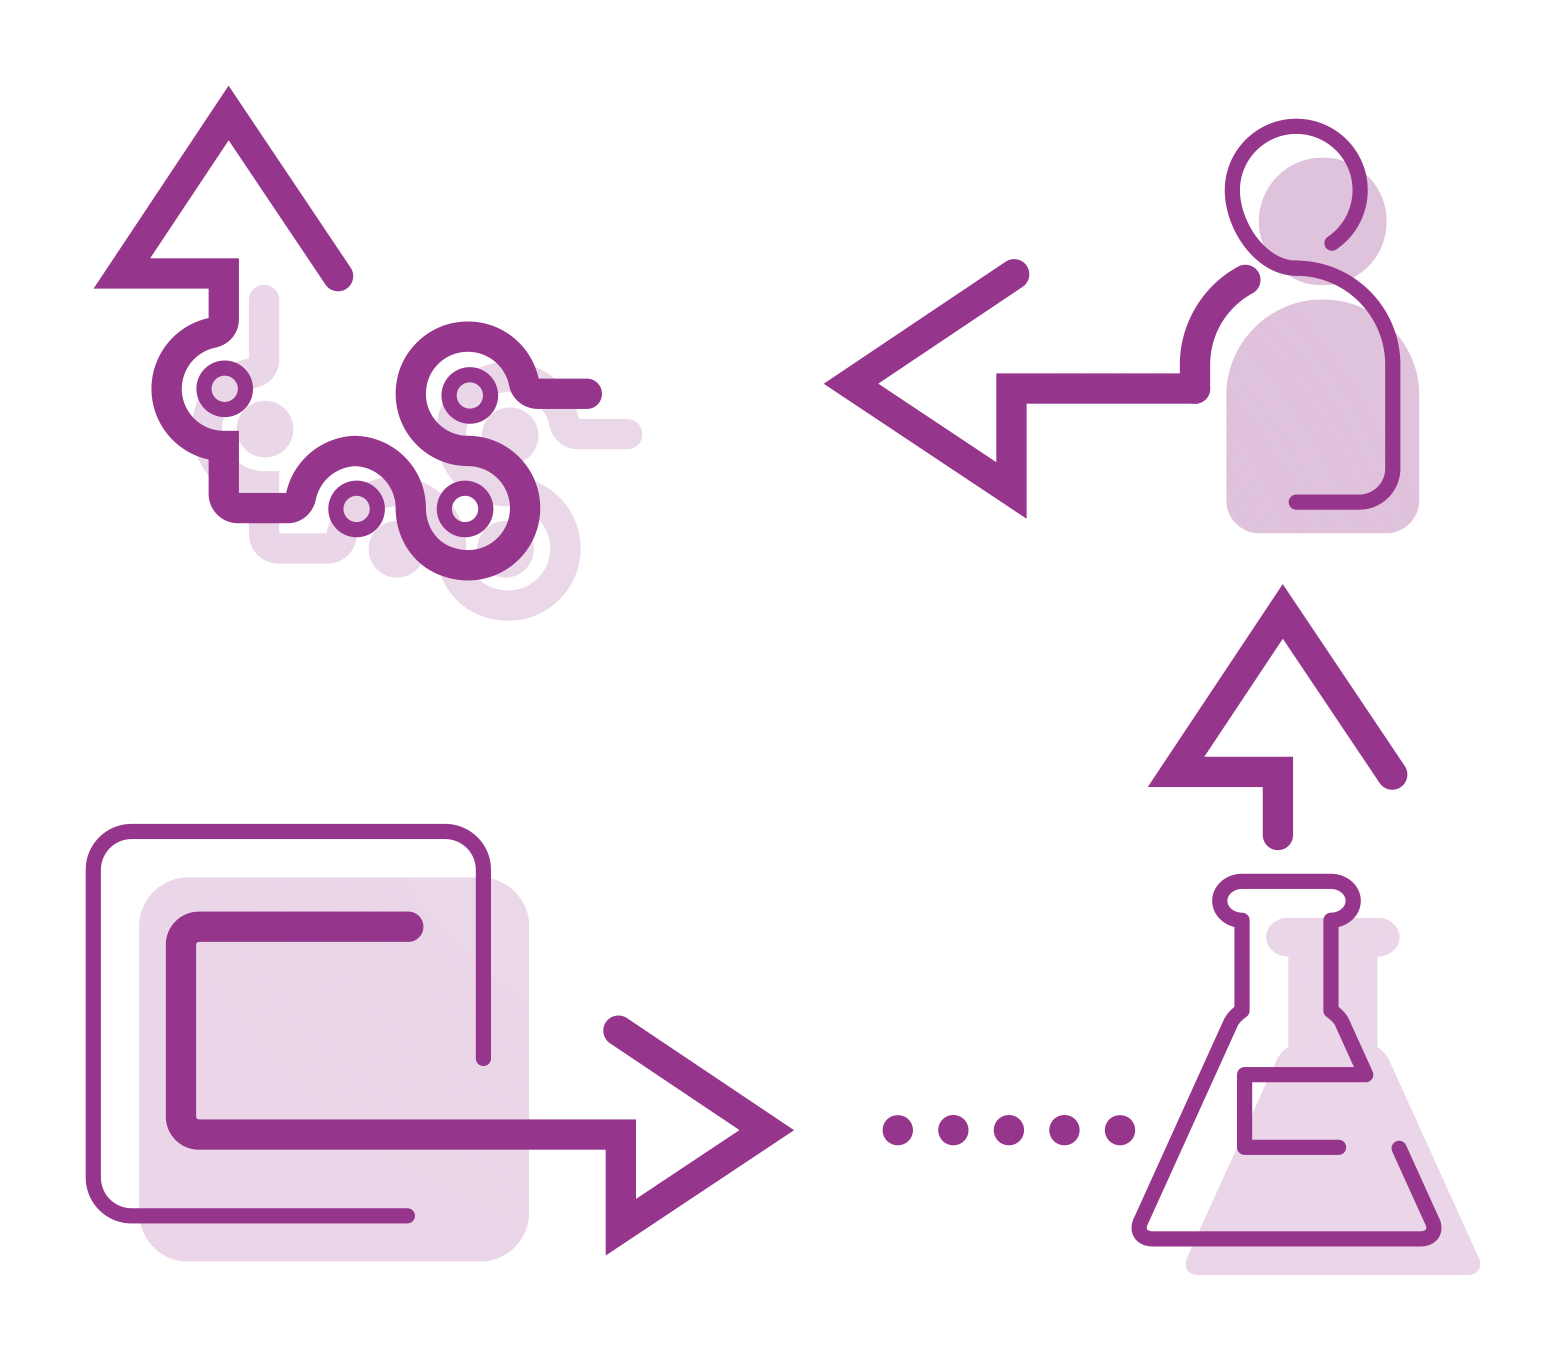 icons_4-set_purple_big.png